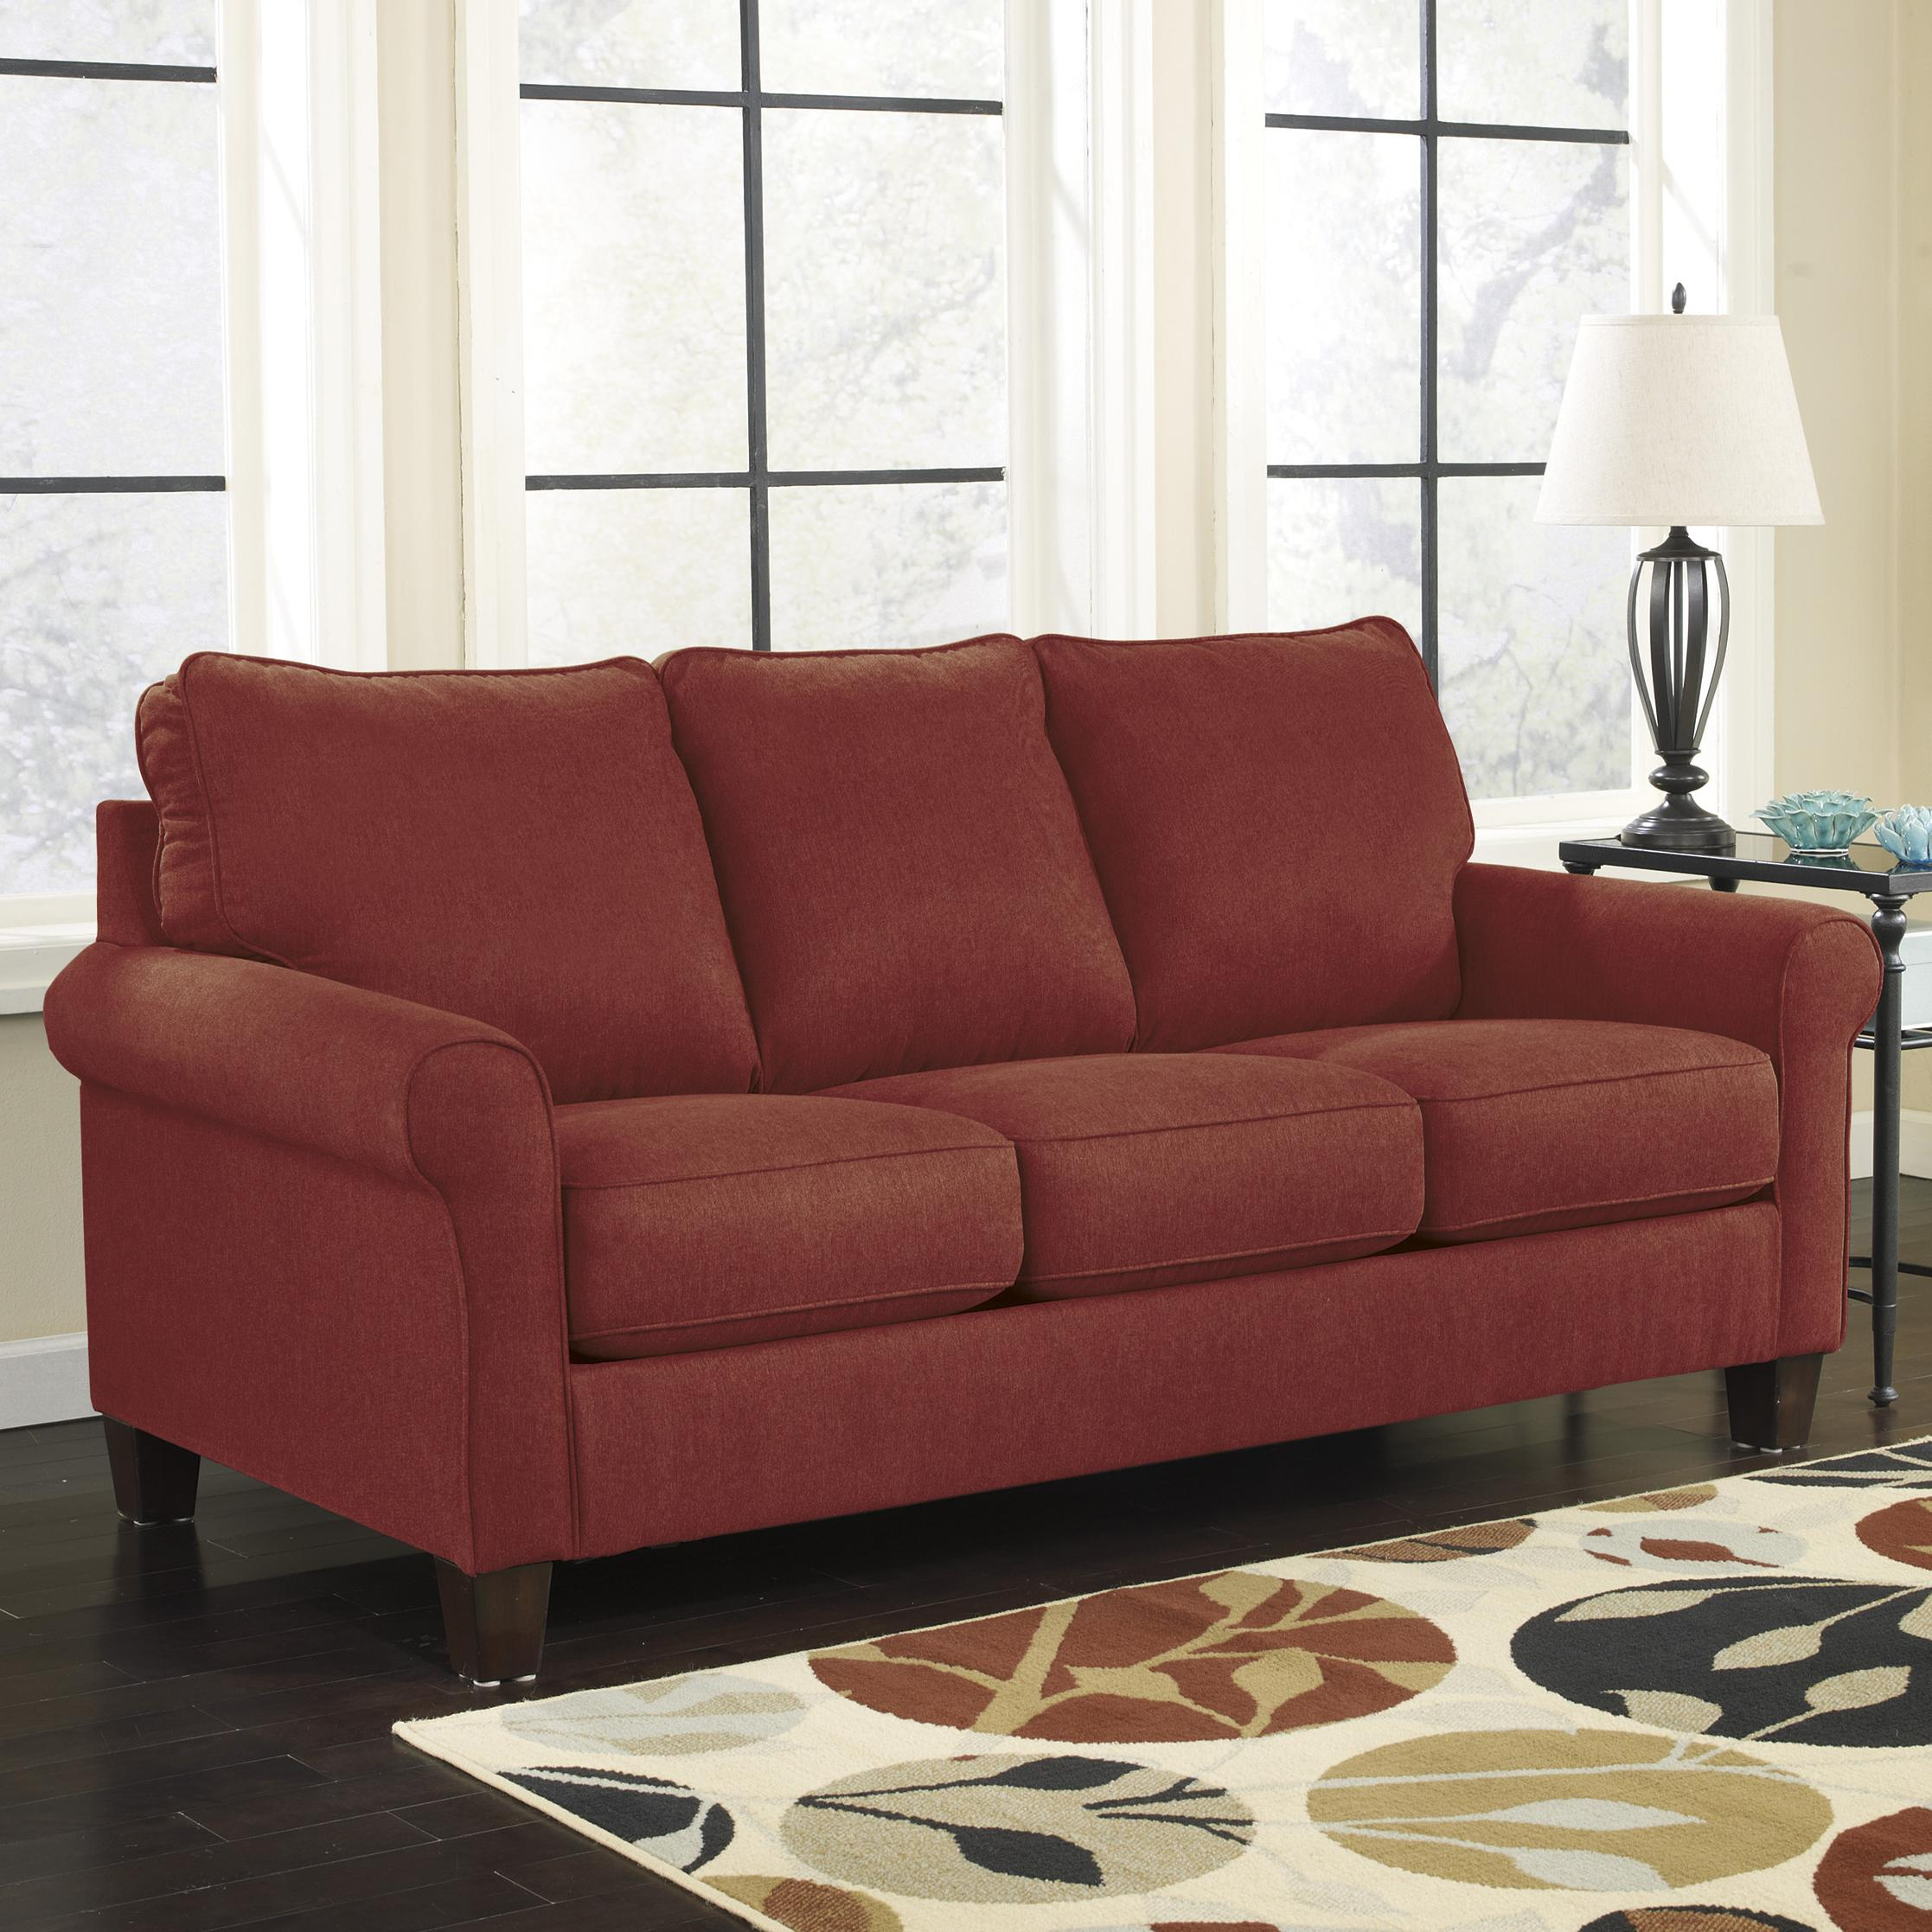 Ordinaire Signature Design By Ashley Zeth   Crimson Full Sofa Sleeper   Item Number:  2710236